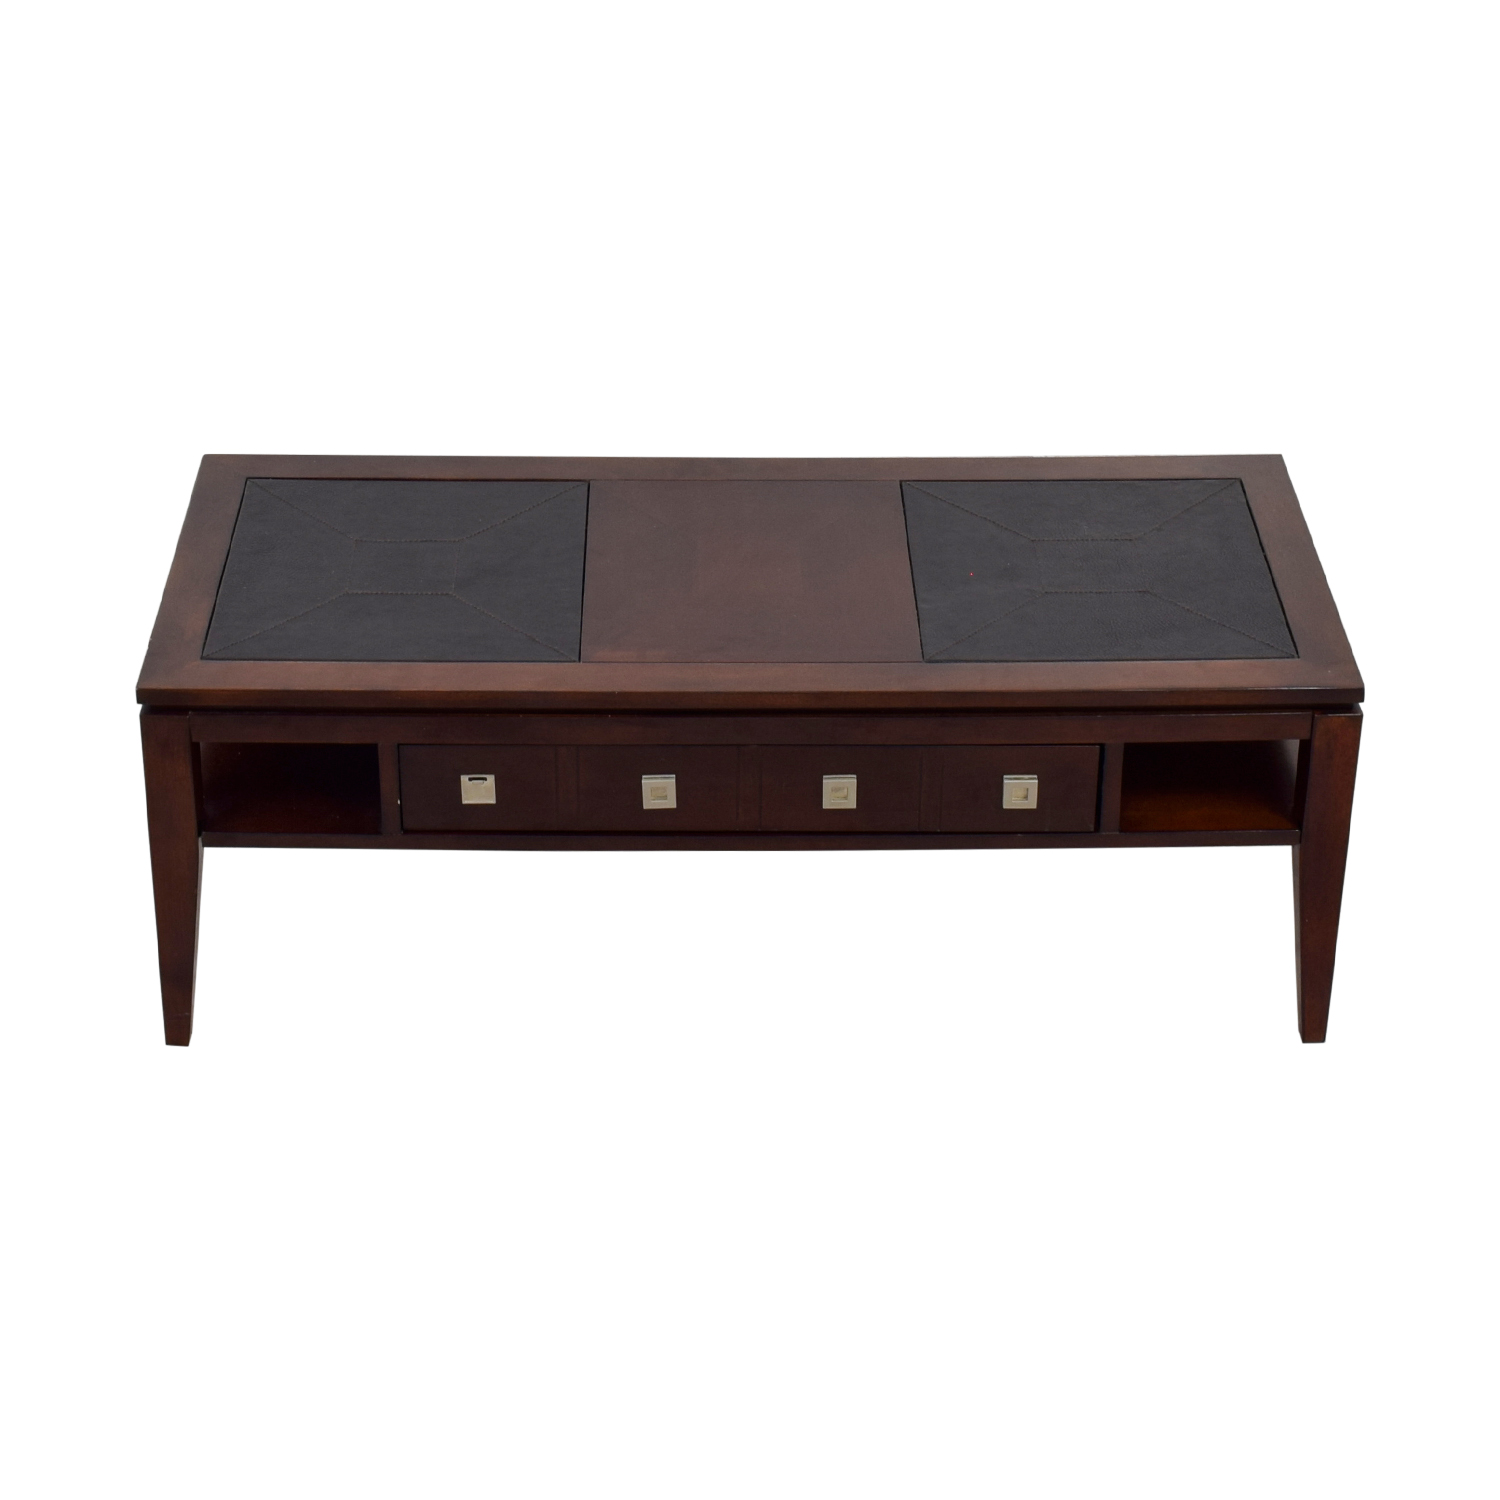 Raymour & Flanigan Raymour & Flanigan Single-Drawer Coffee Table for sale